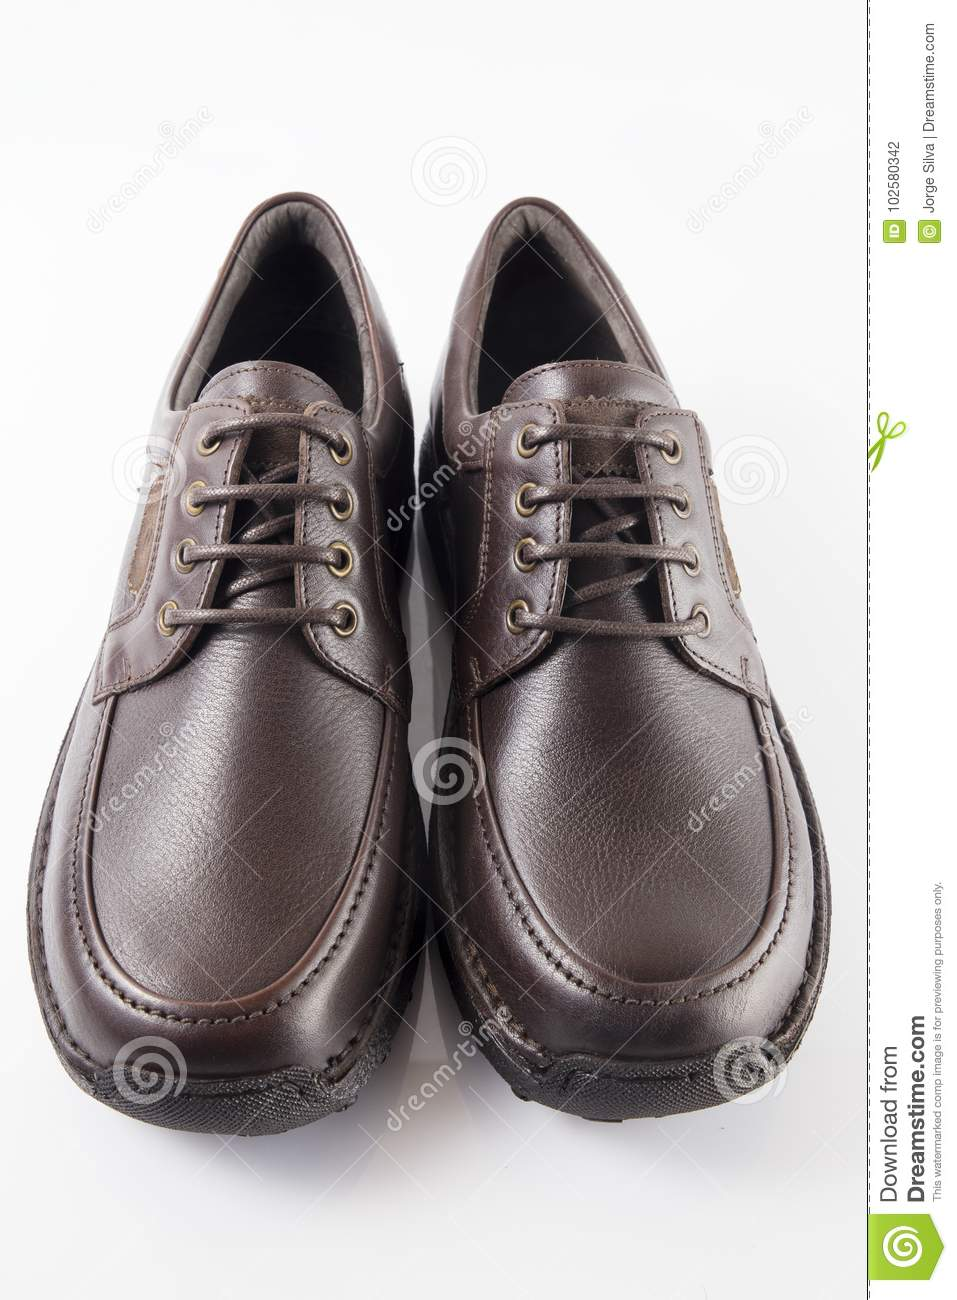 9e58f8a295 Male Brown Leather Shoe On White Background Stock Photo - Image of ...